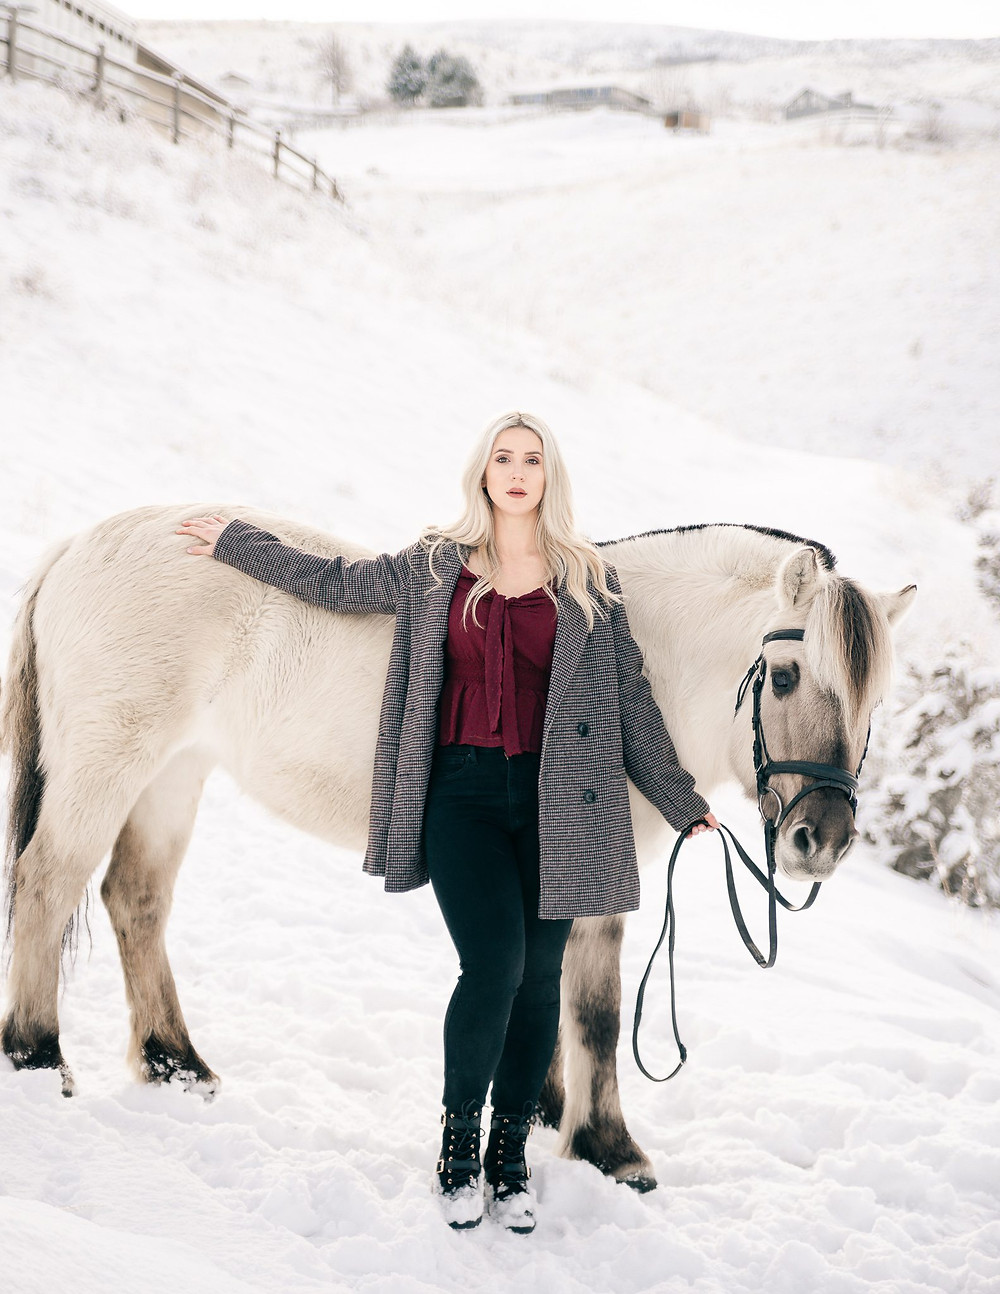 A blonde girl wearing a maroon shirt, grey coat, and black pants, leaning up against her Fjord horse in the snow